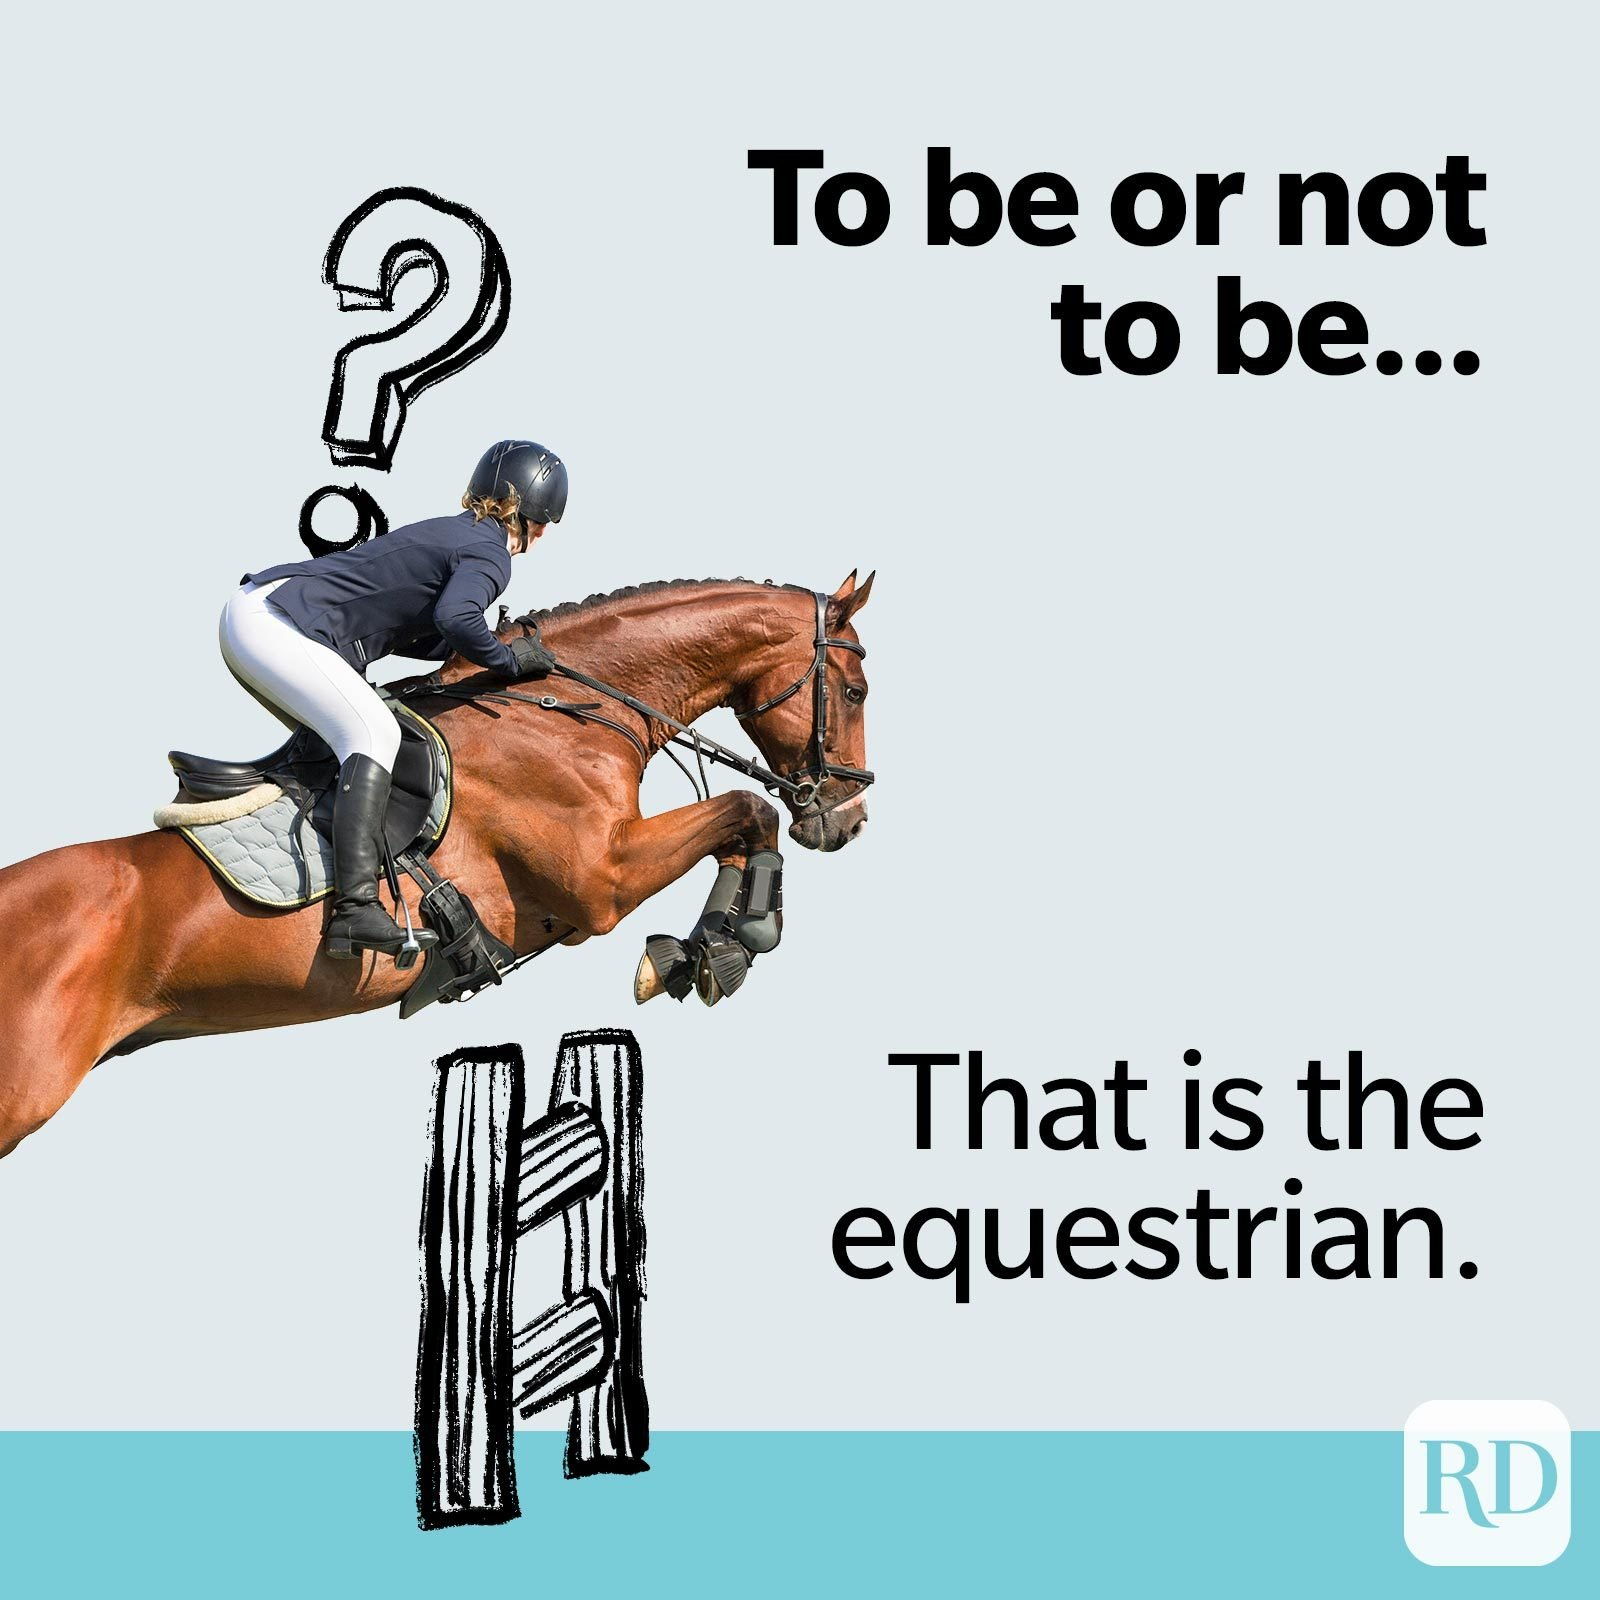 TO be or not to be... that is the equestrian.